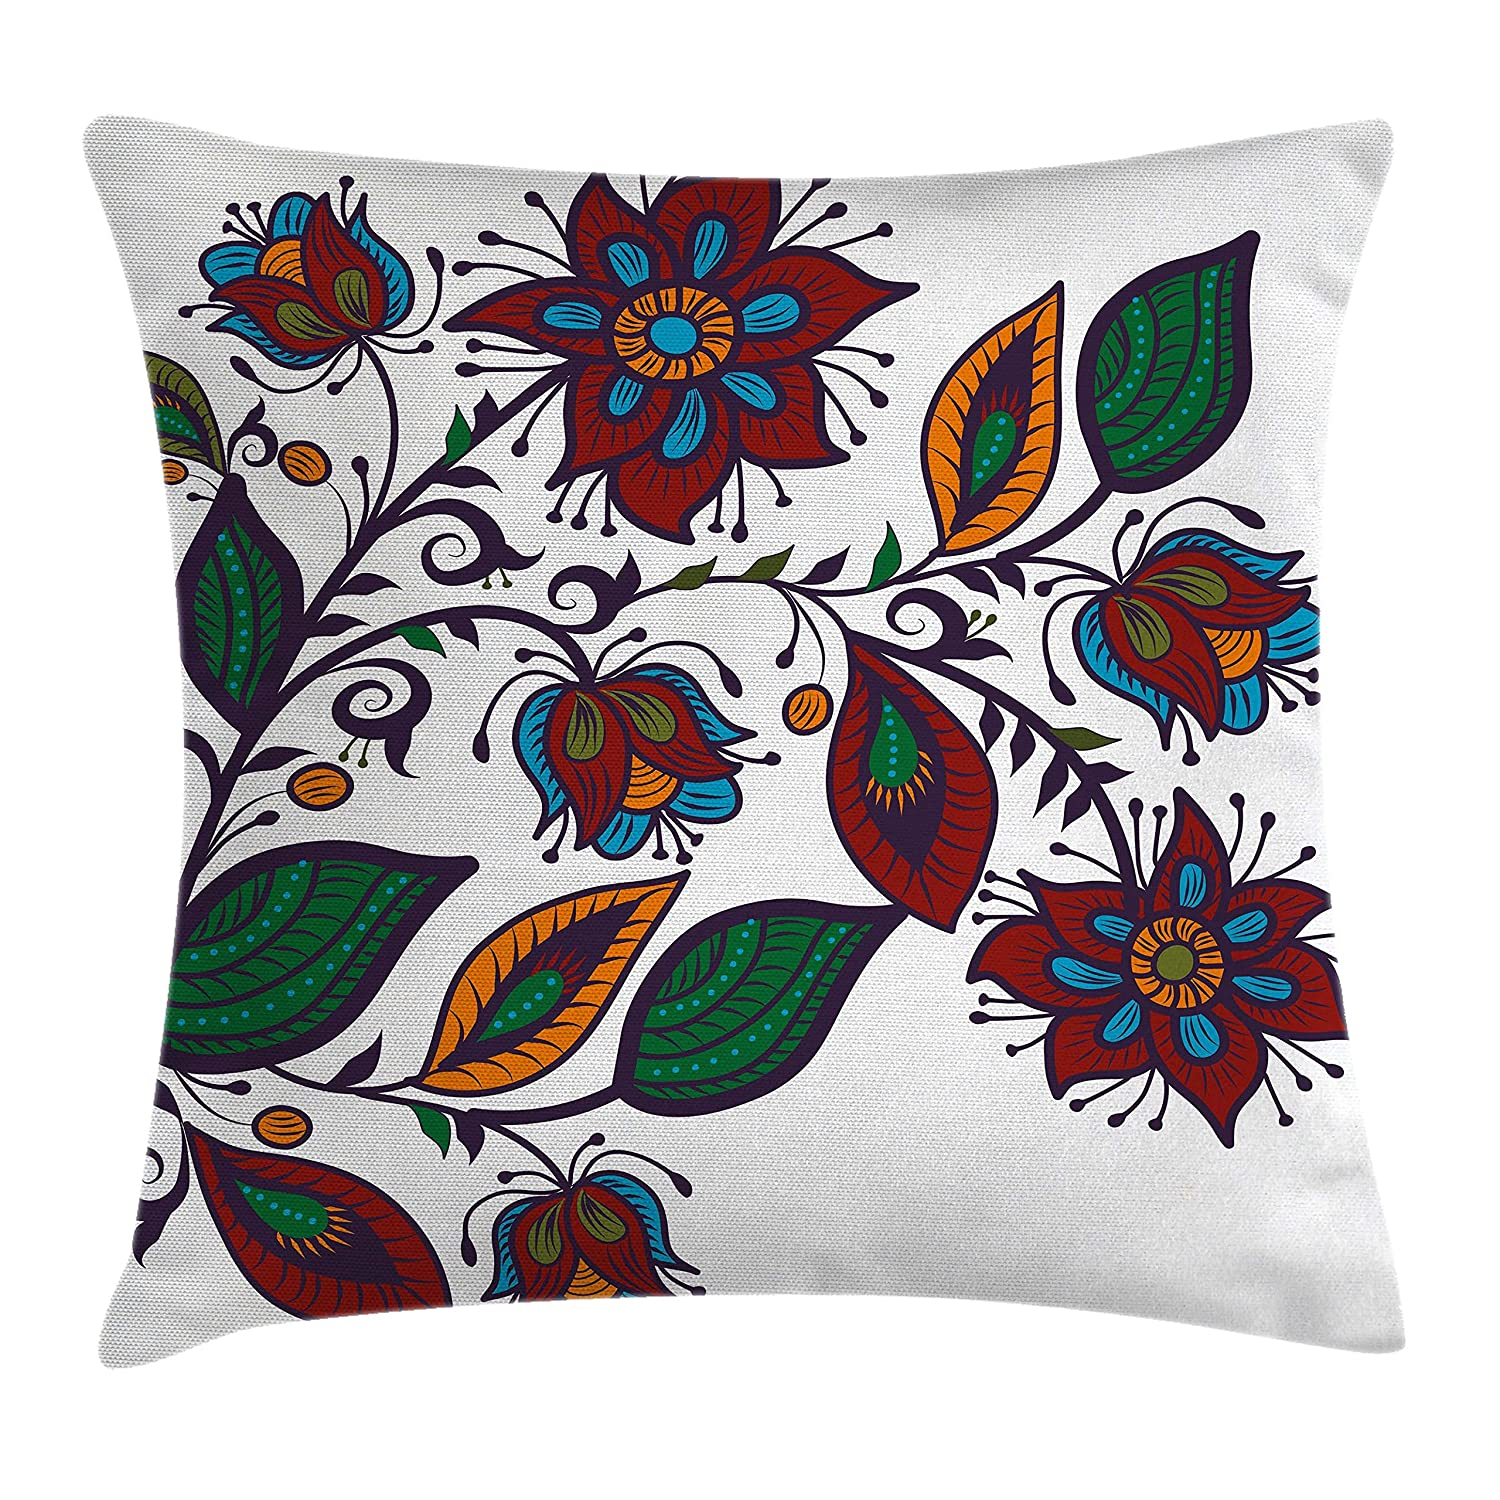 Amazon com: Ambesonne Vintage Throw Pillow Cushion Cover